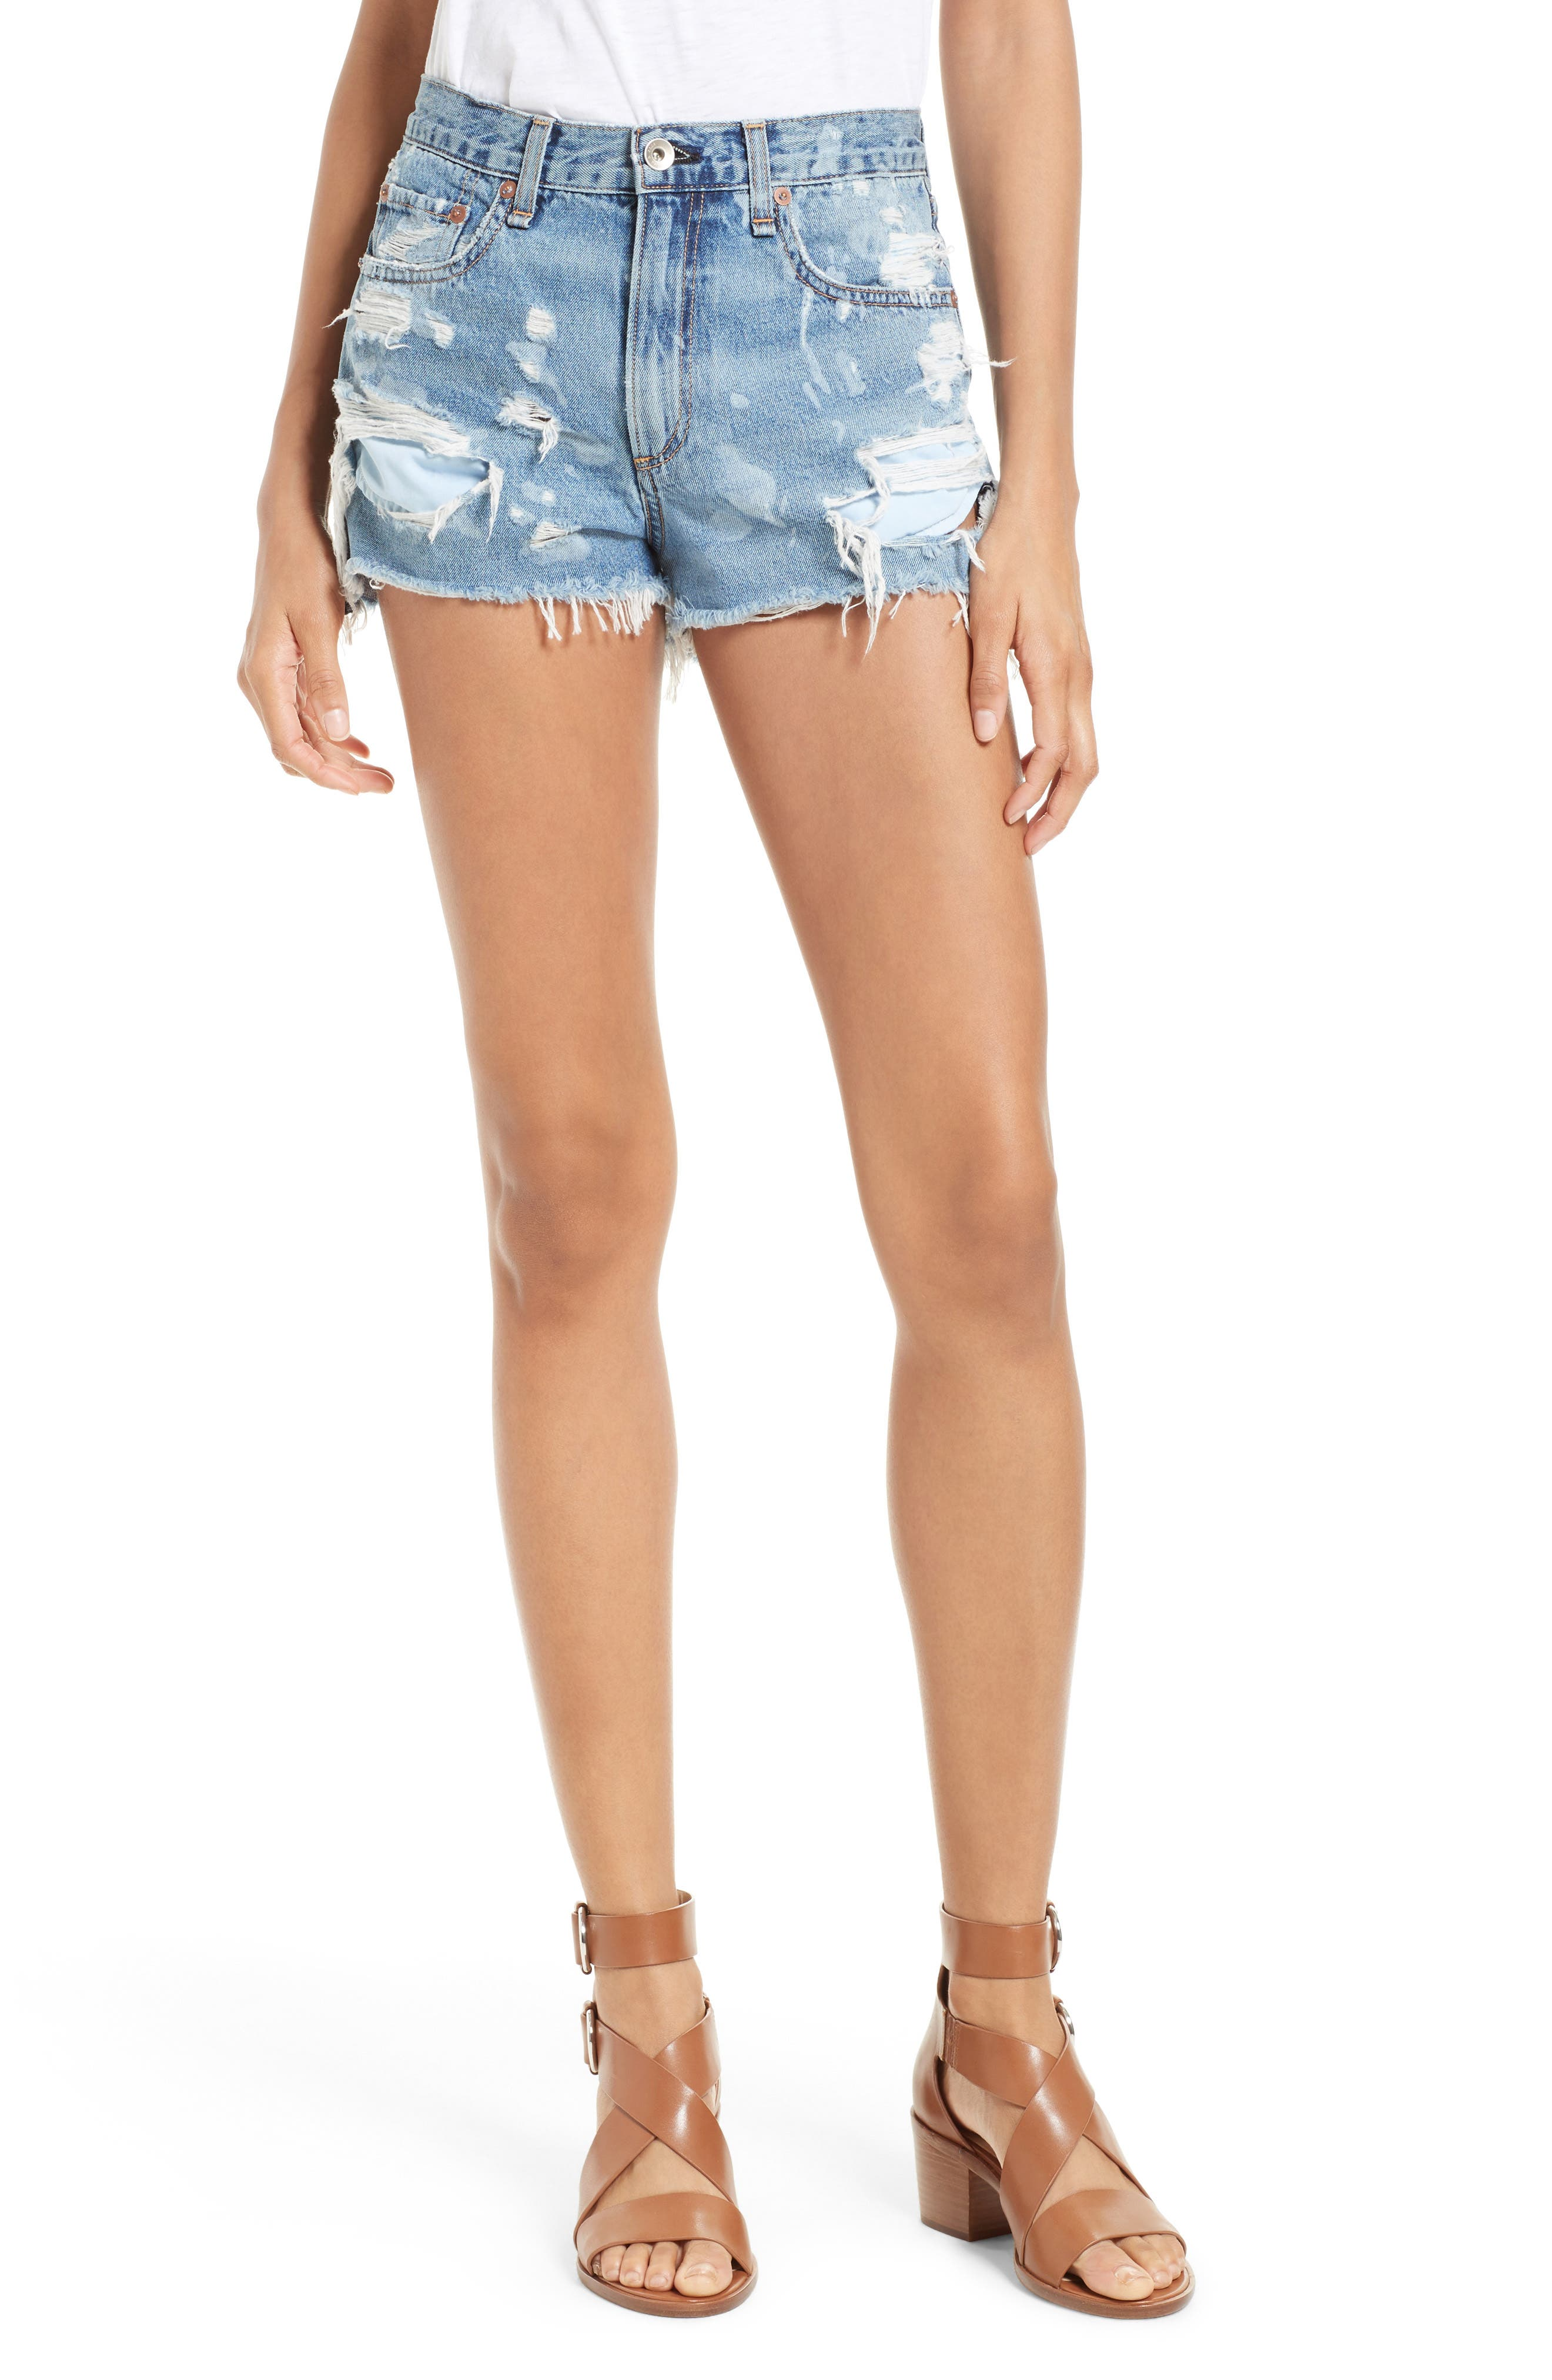 Justine High Waist Cutoff Denim Shorts,                             Main thumbnail 1, color,                             Brokenland